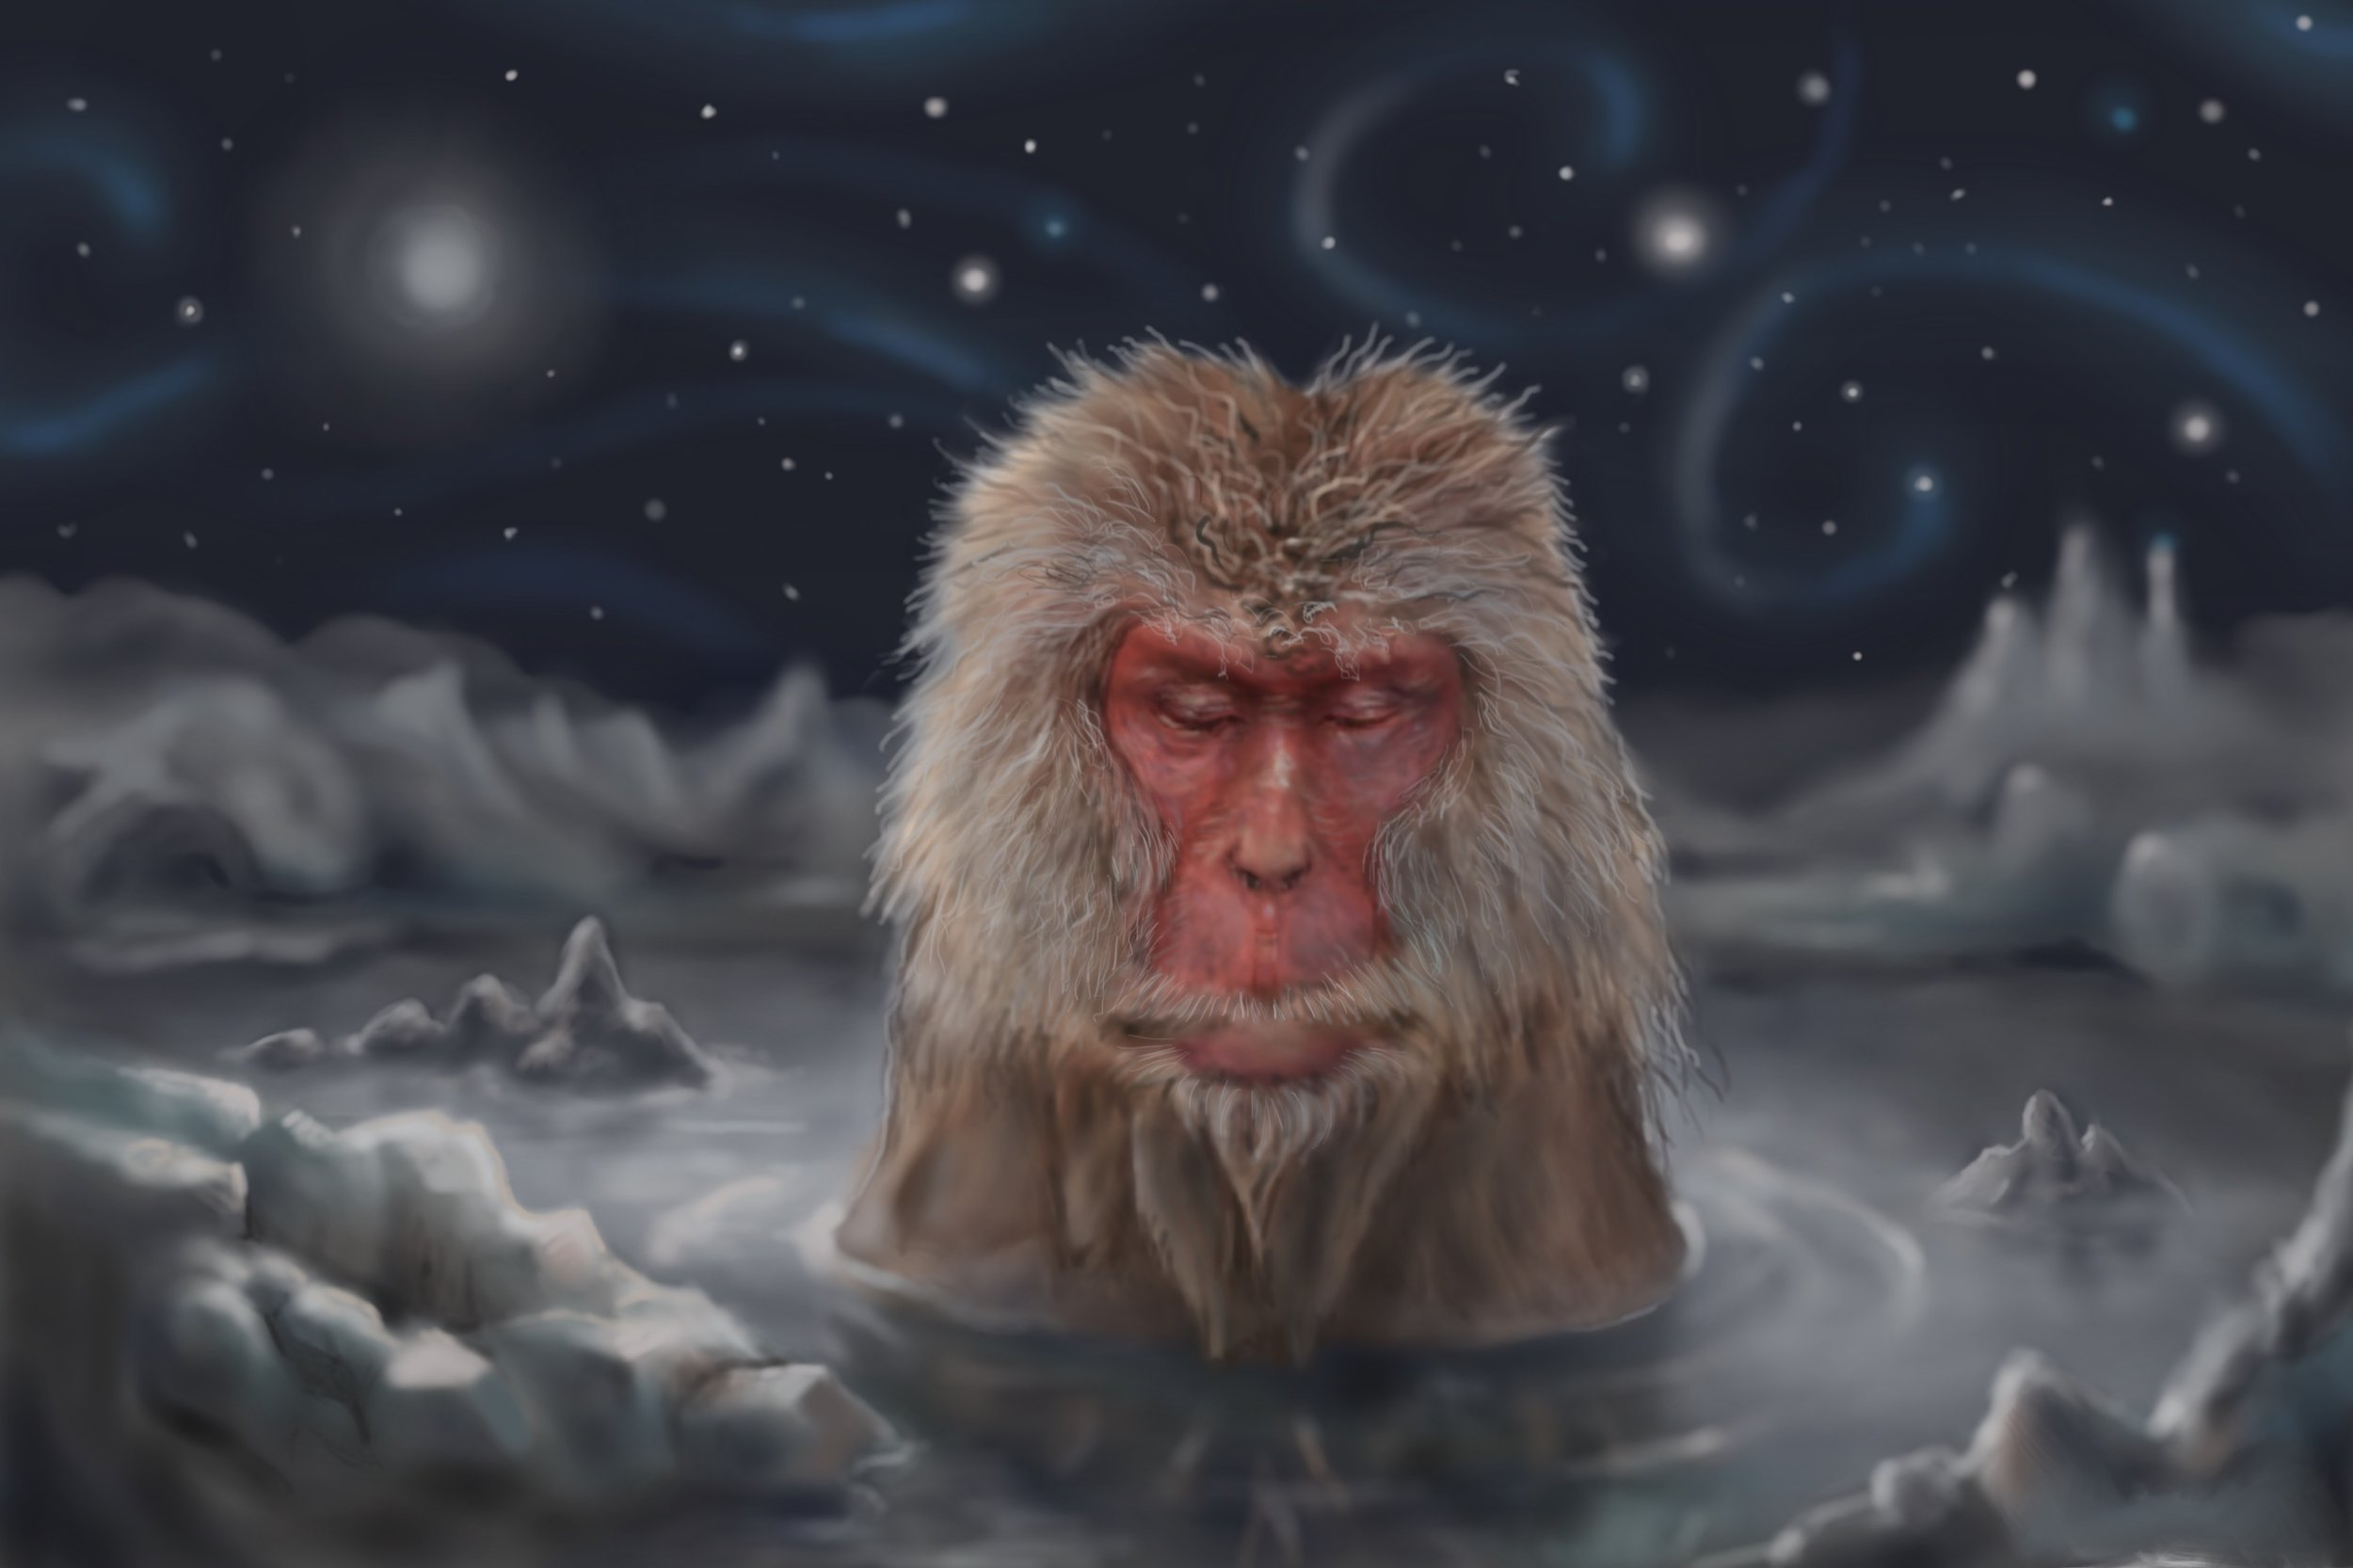 Image of a painting of a monkey.